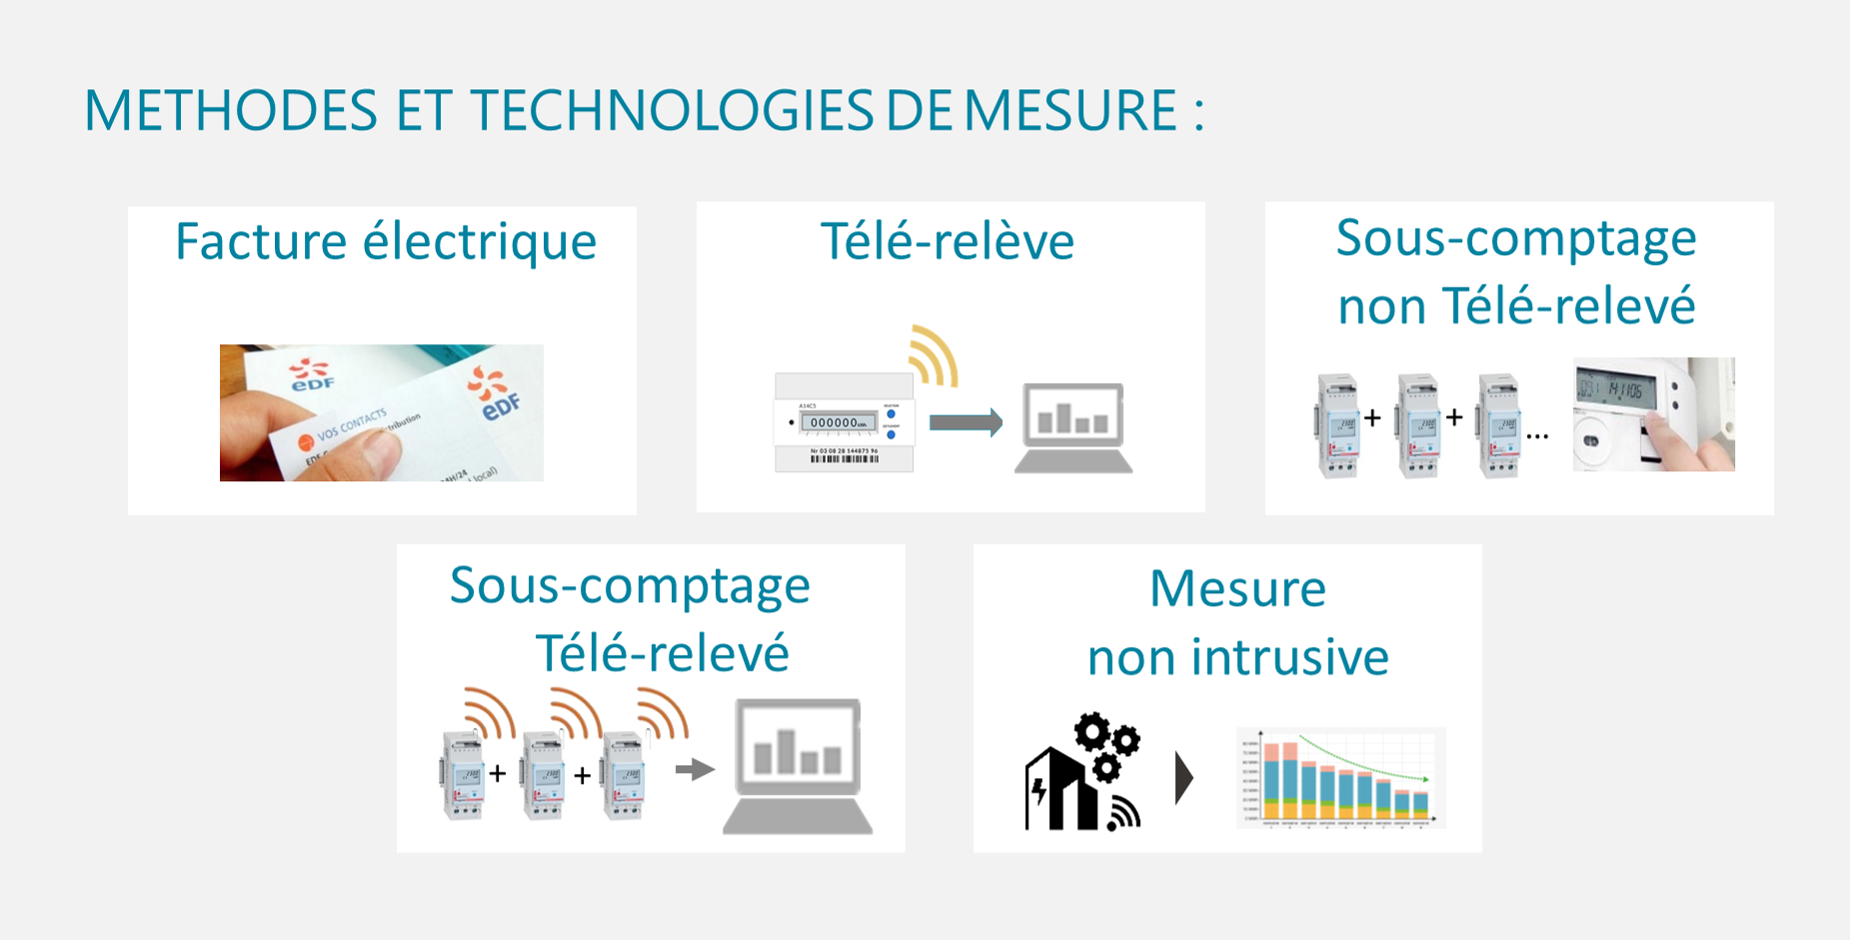 methode et techno de mesure